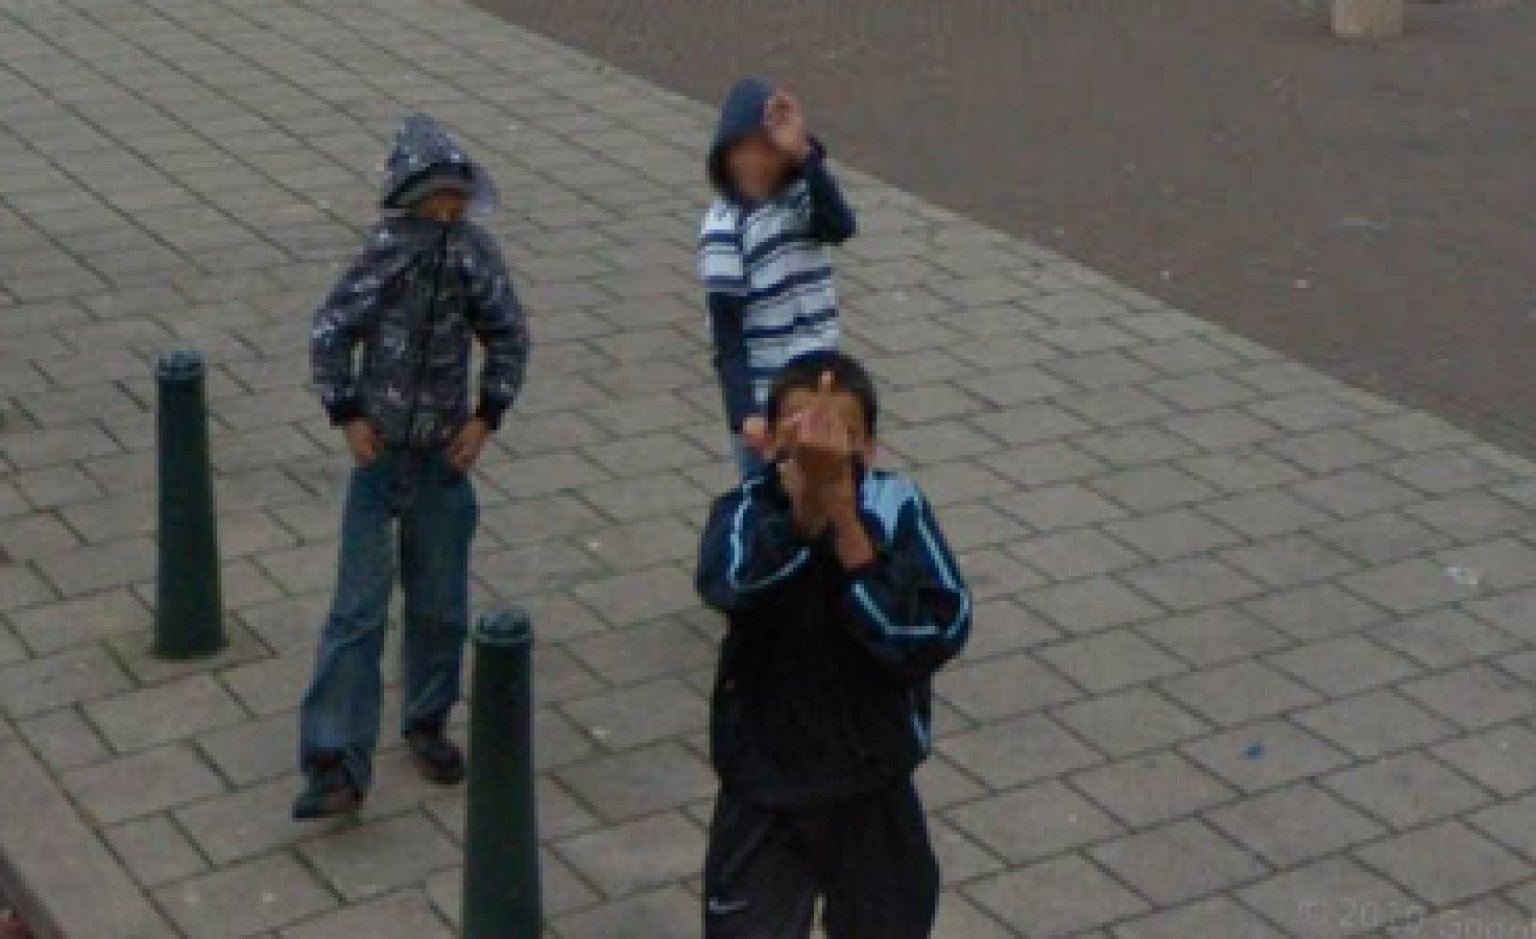 The world unites in flipping off the google street view car huffpost gumiabroncs Choice Image